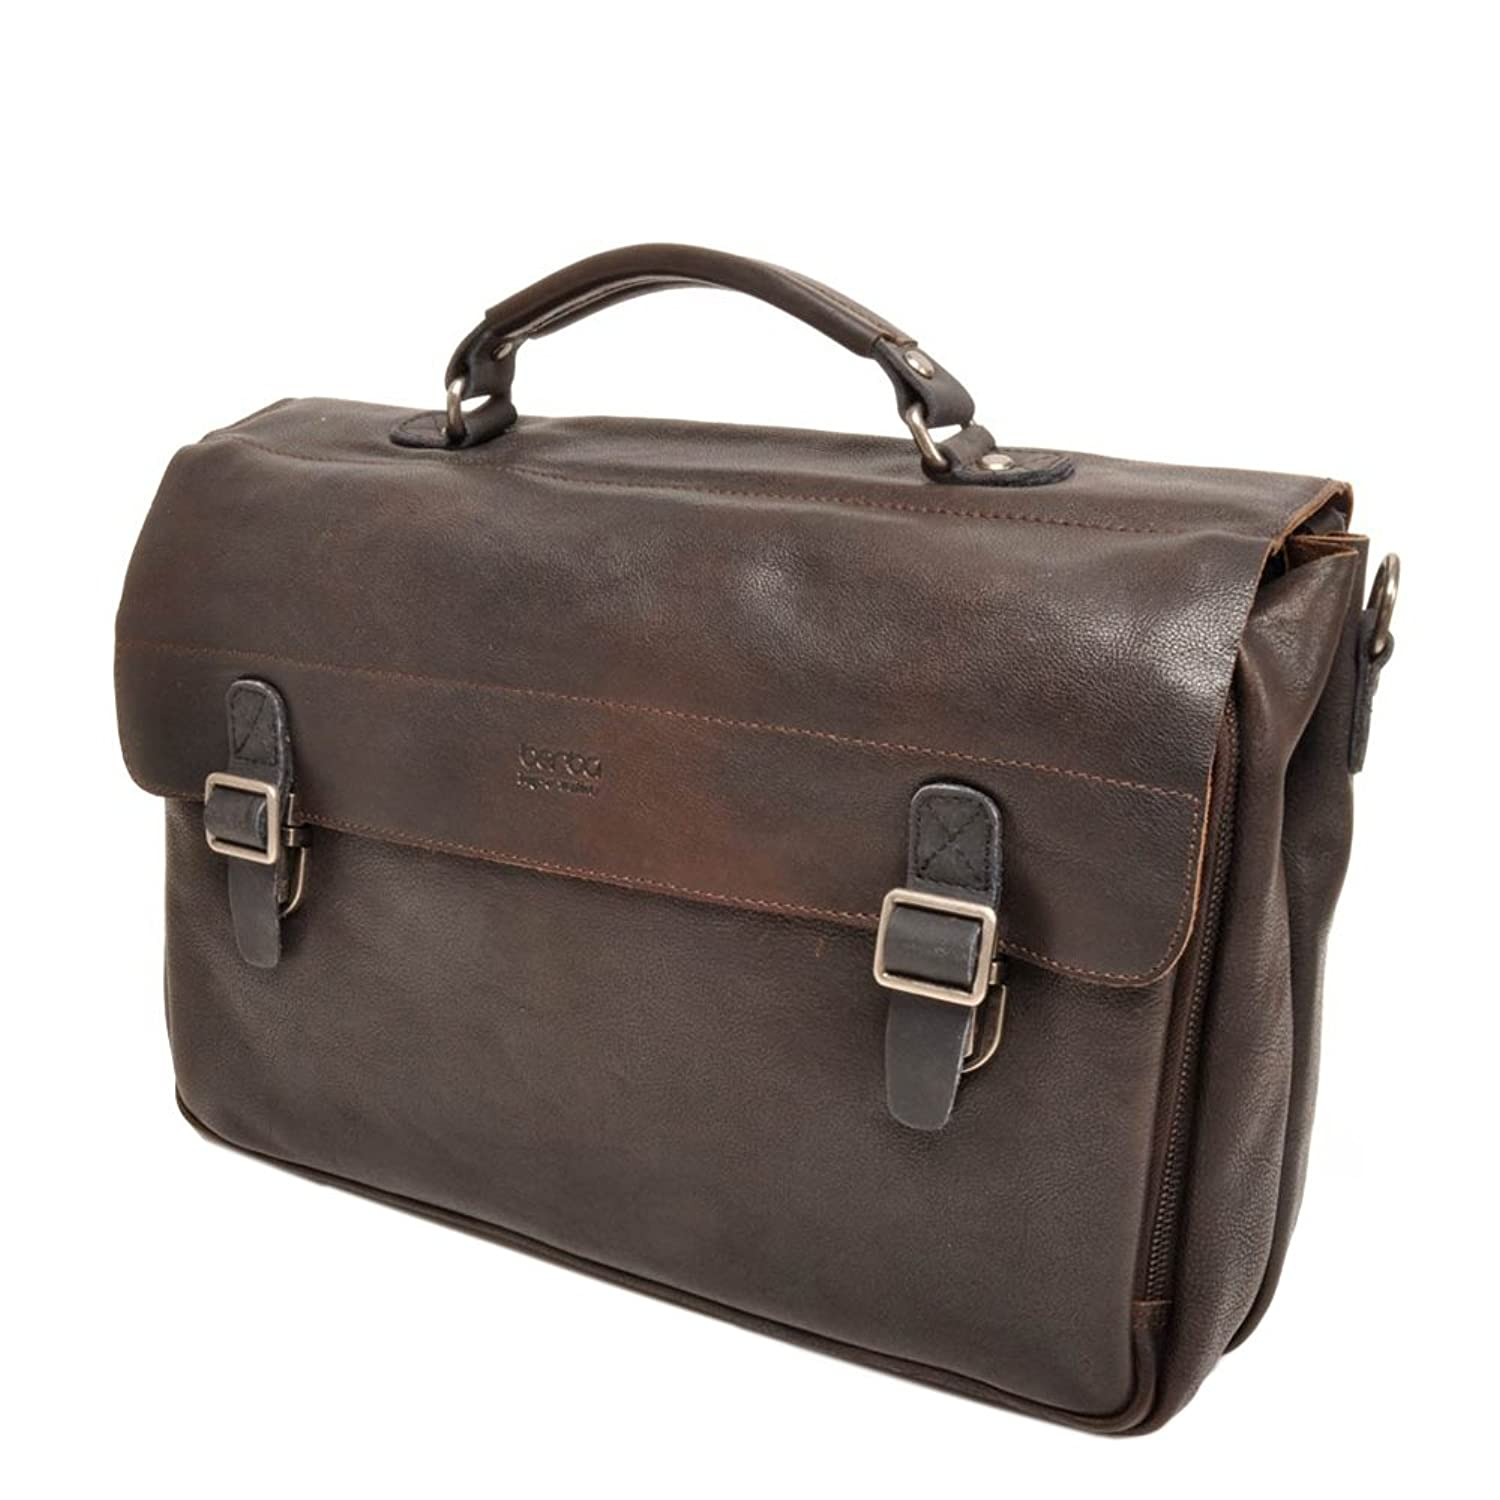 berba Bern 315 Business satchel in dark brown